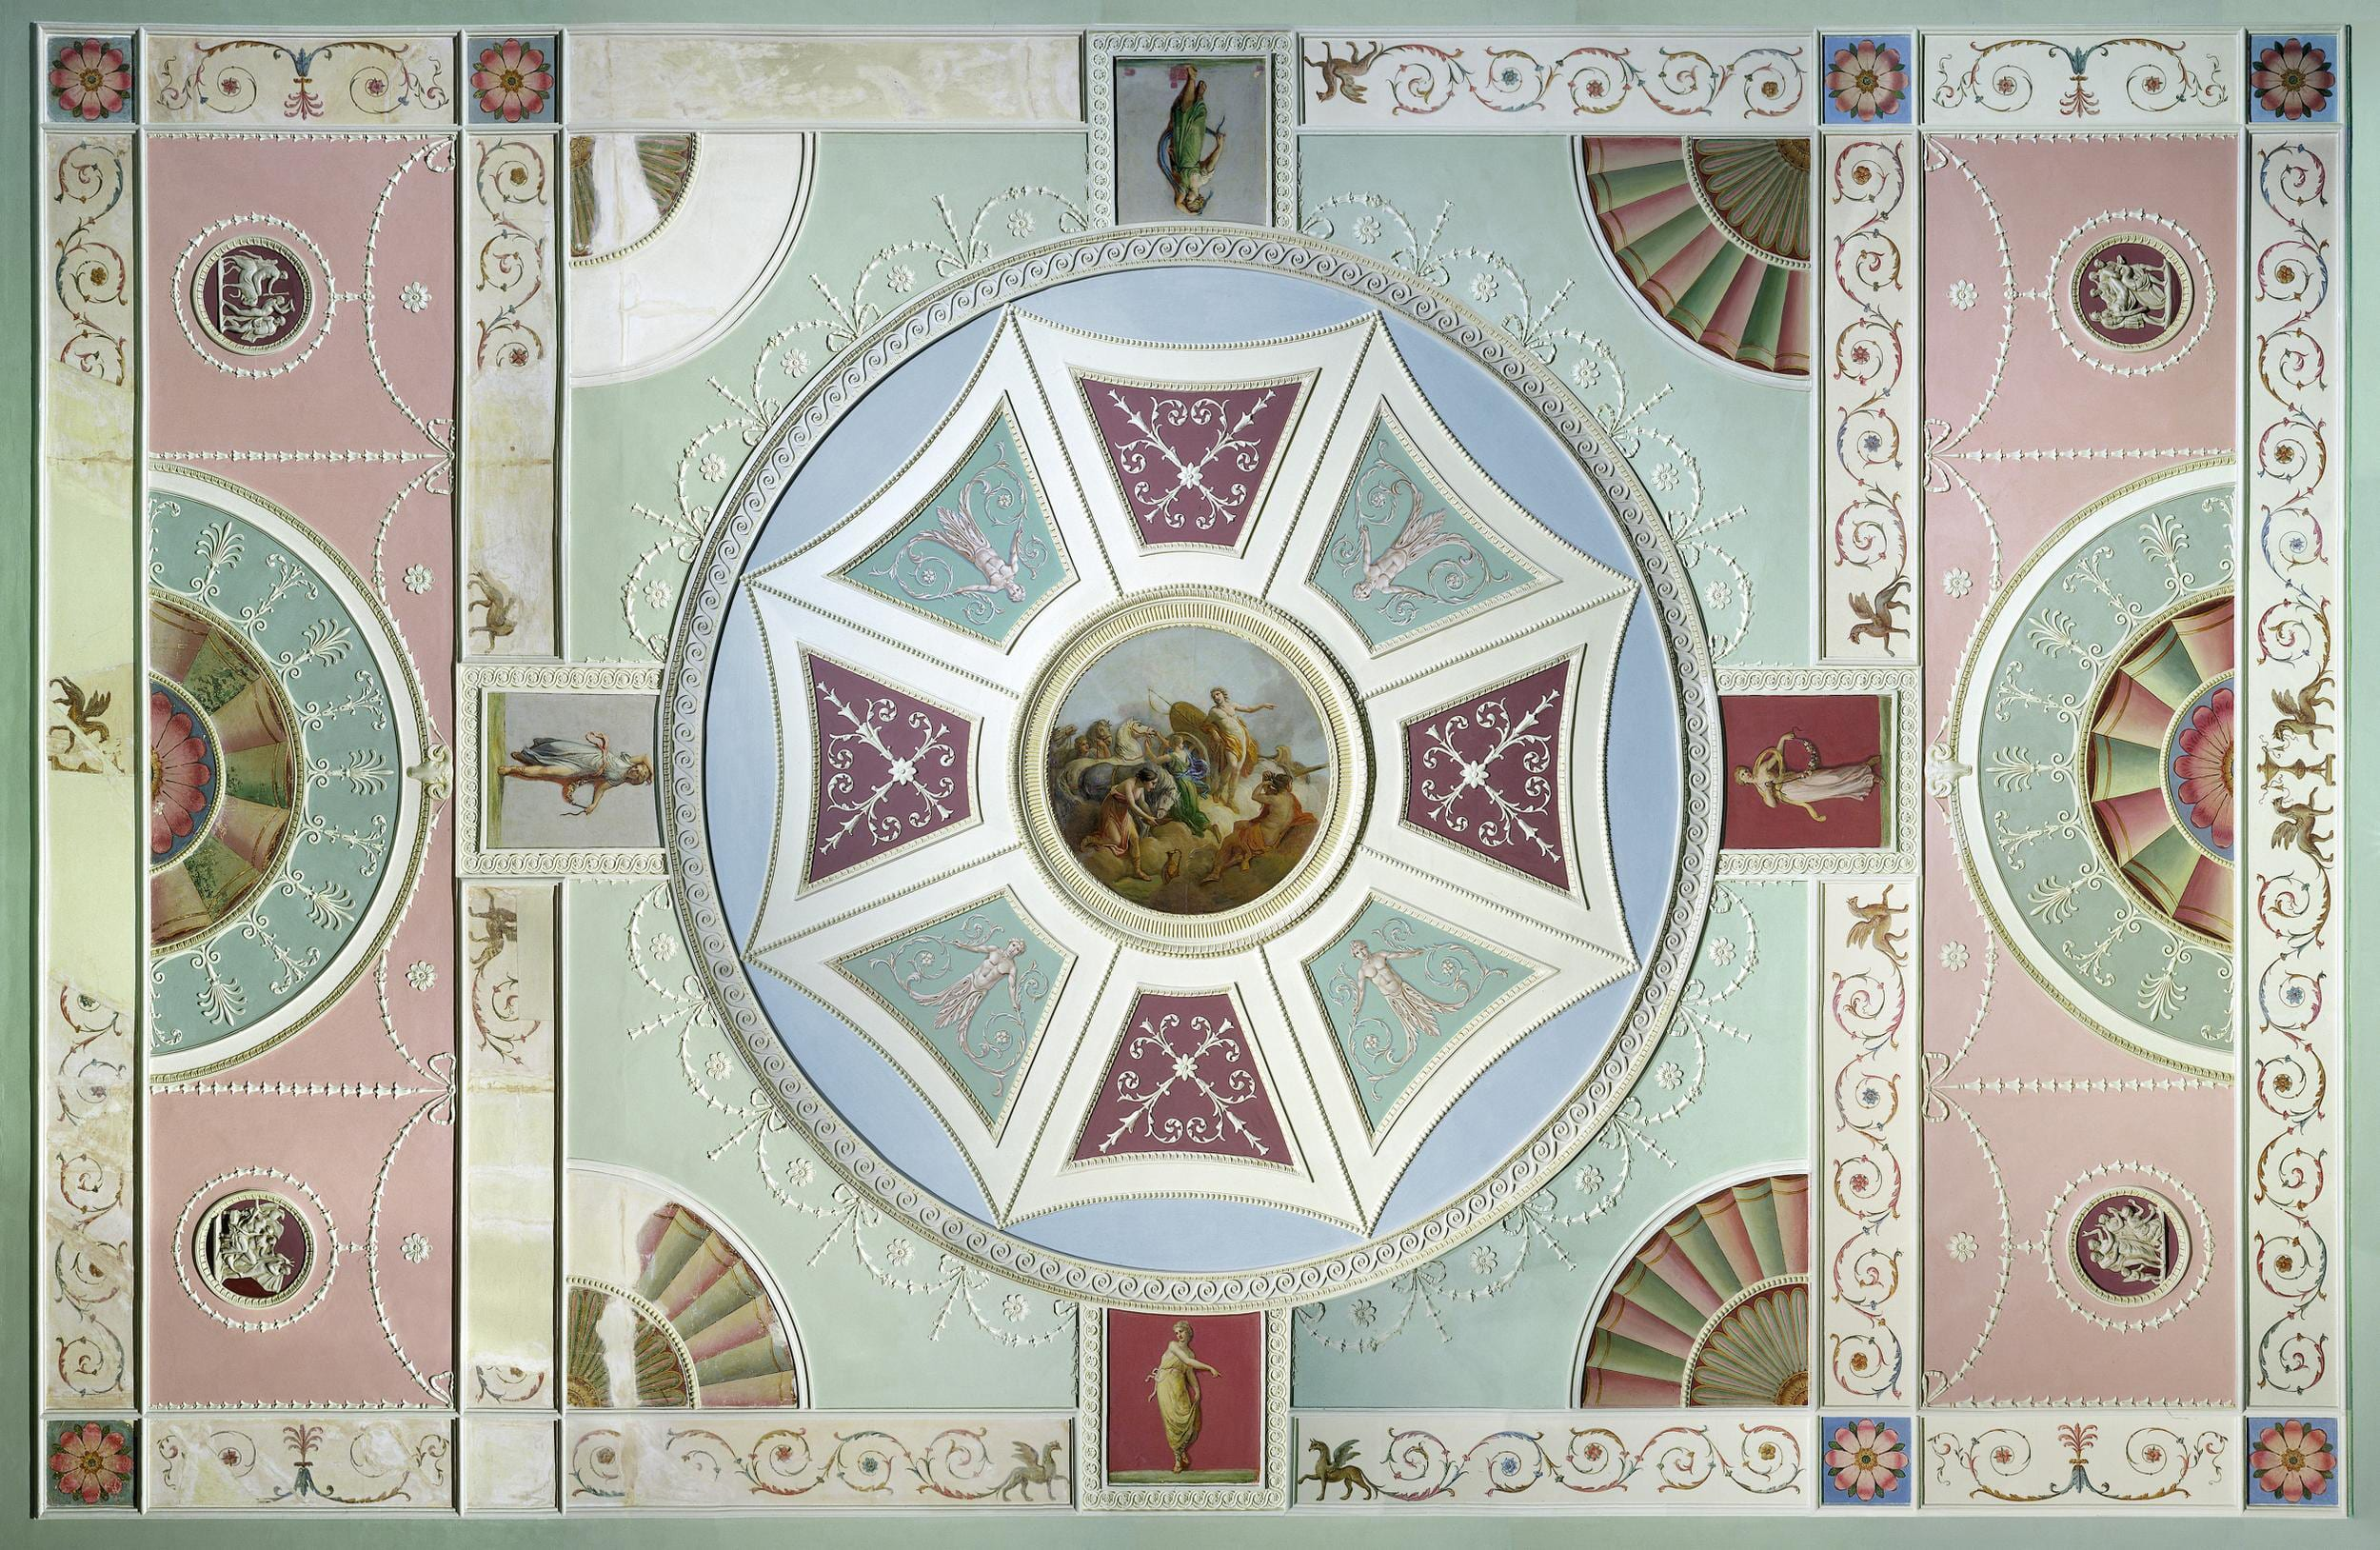 14 The ceiling from Garrick's front drawing room in the V&A British Galleries. Photograph © Victoria and Albert Museum